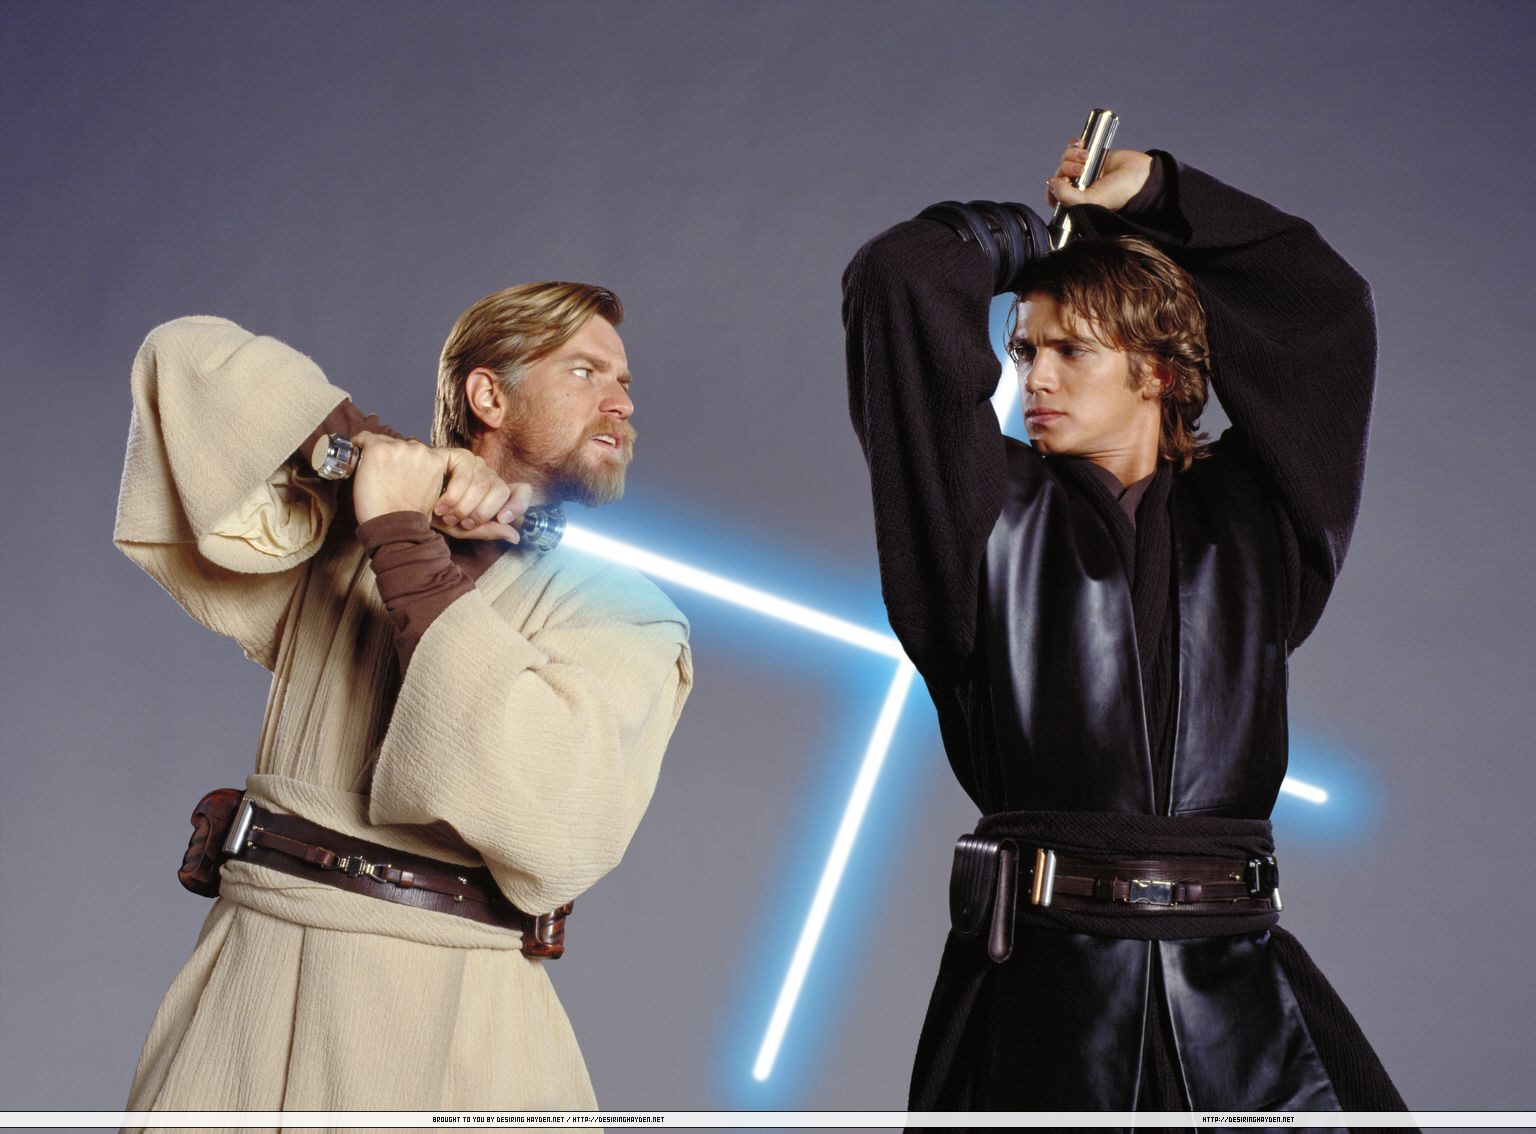 Star wars jedi anakin and obi wan